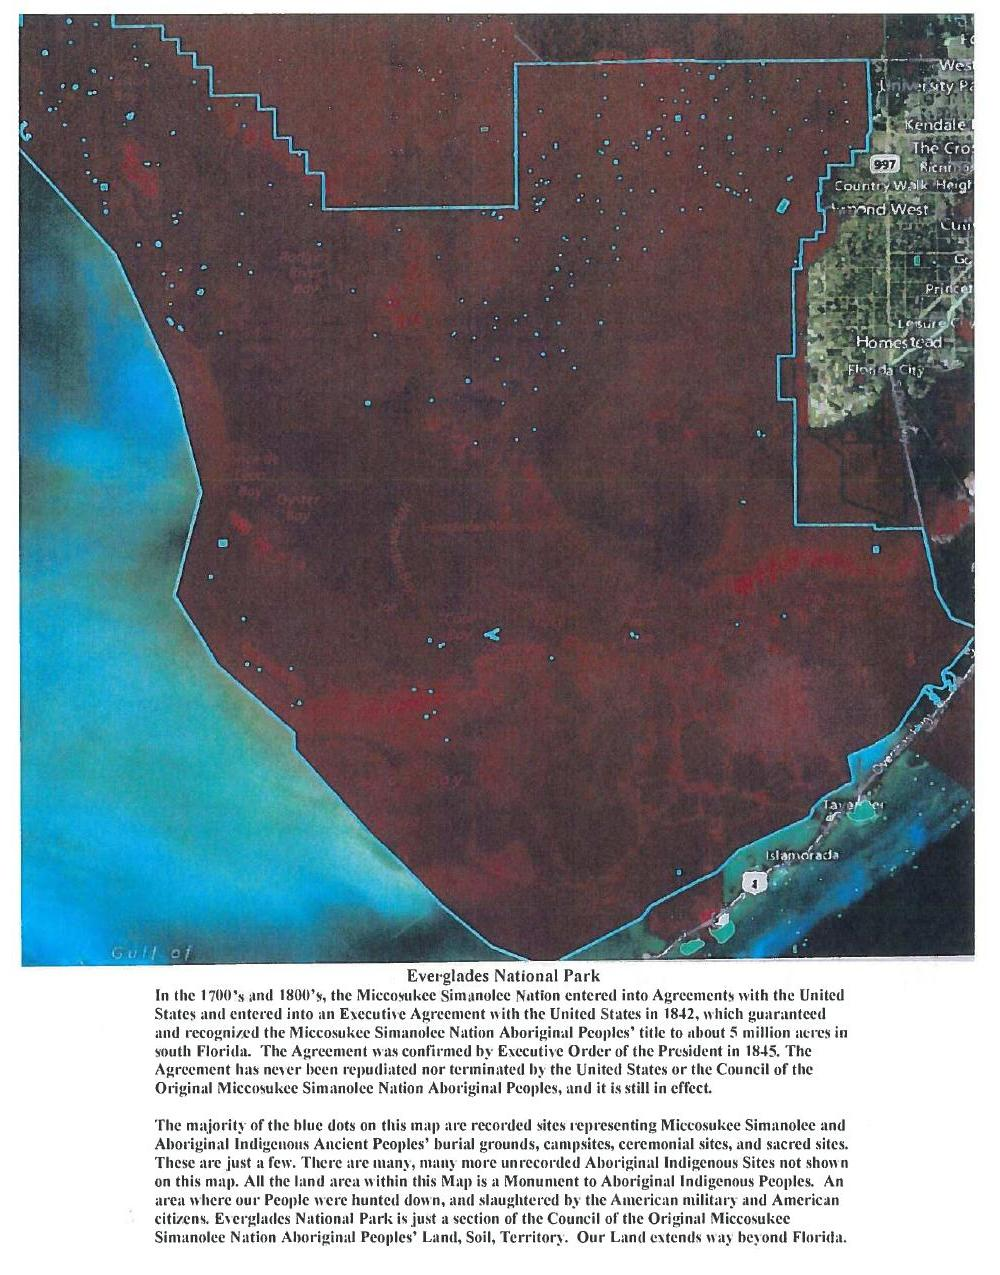 1000x1275 Everglades National Park, in Council of the Original Miccosukee Simanolee Nation, by John S. Quarterman, for SpectraBusters.org, 21 November 2013